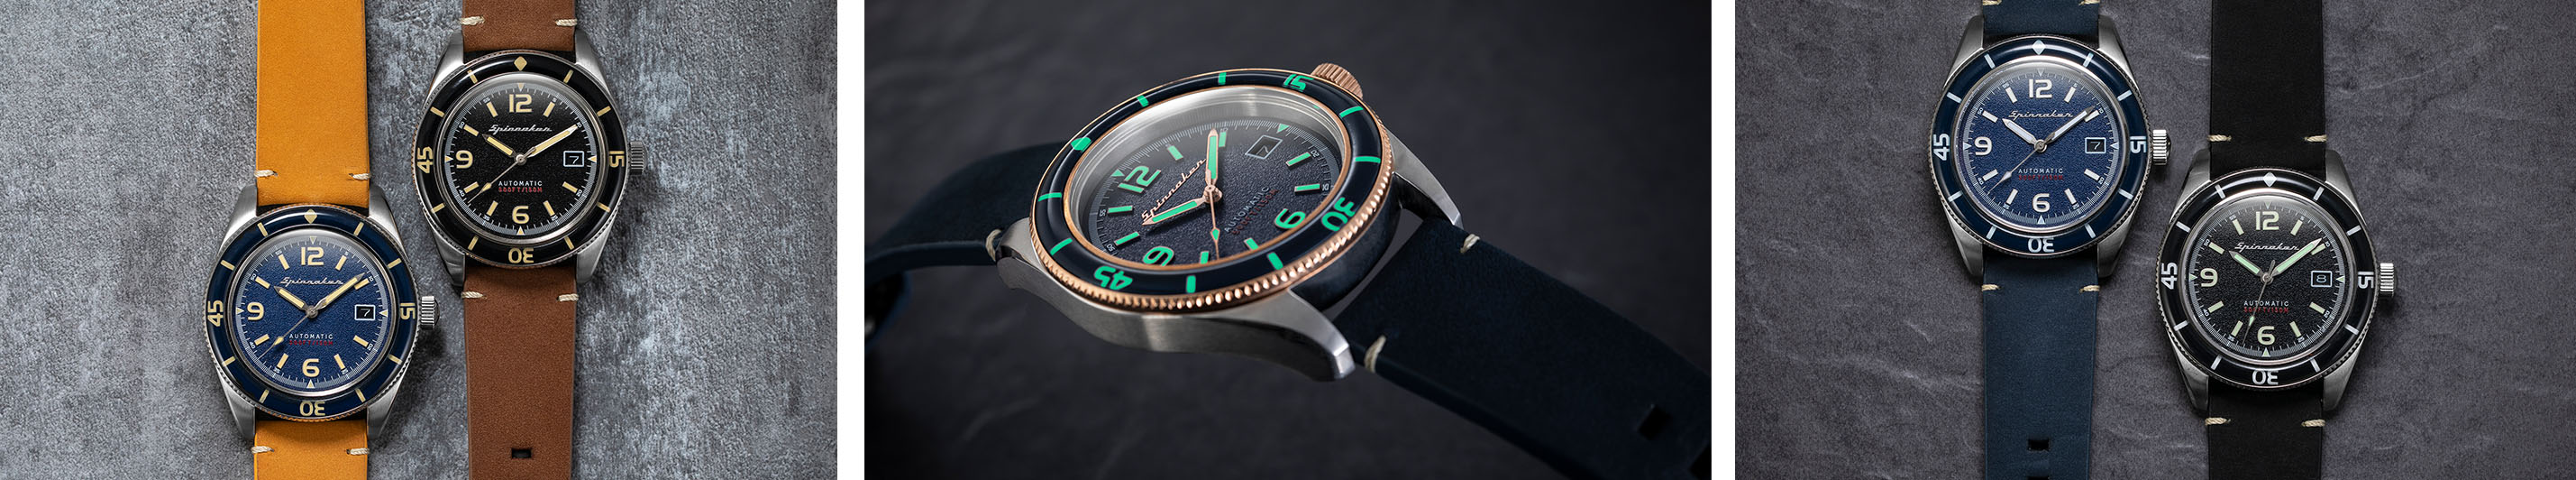 Spinnaker Fleuss Kollektion with lume shot